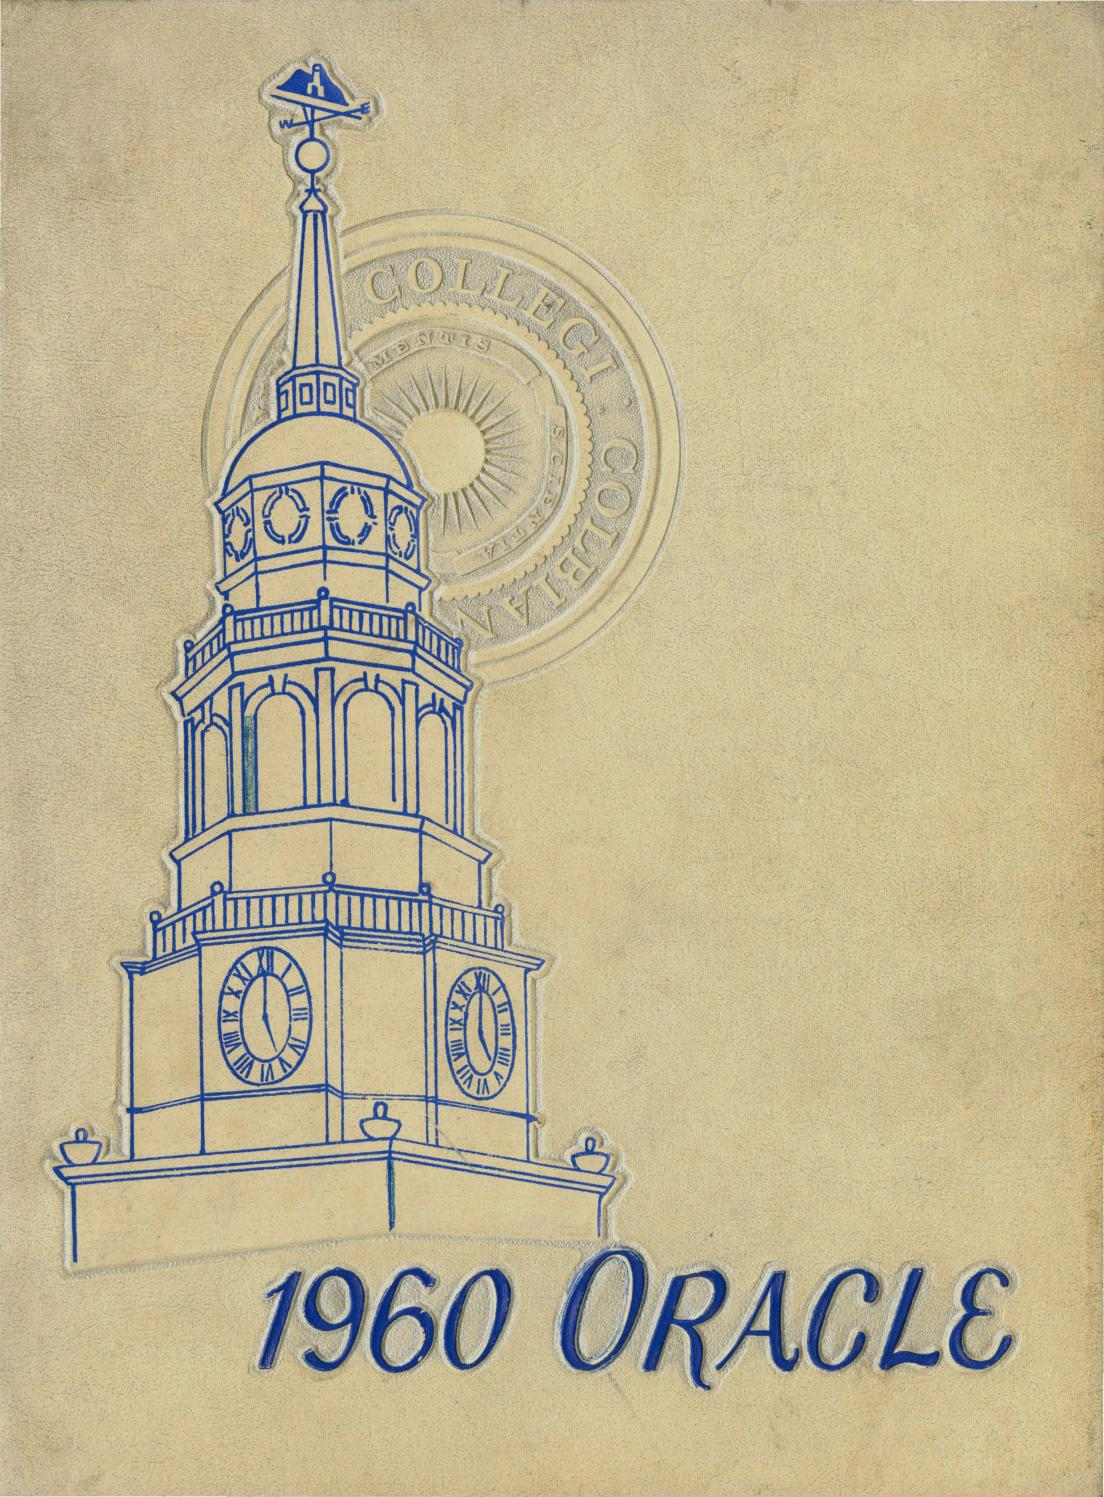 The Colby Oracle 1960 by Colby College Libraries - issuu